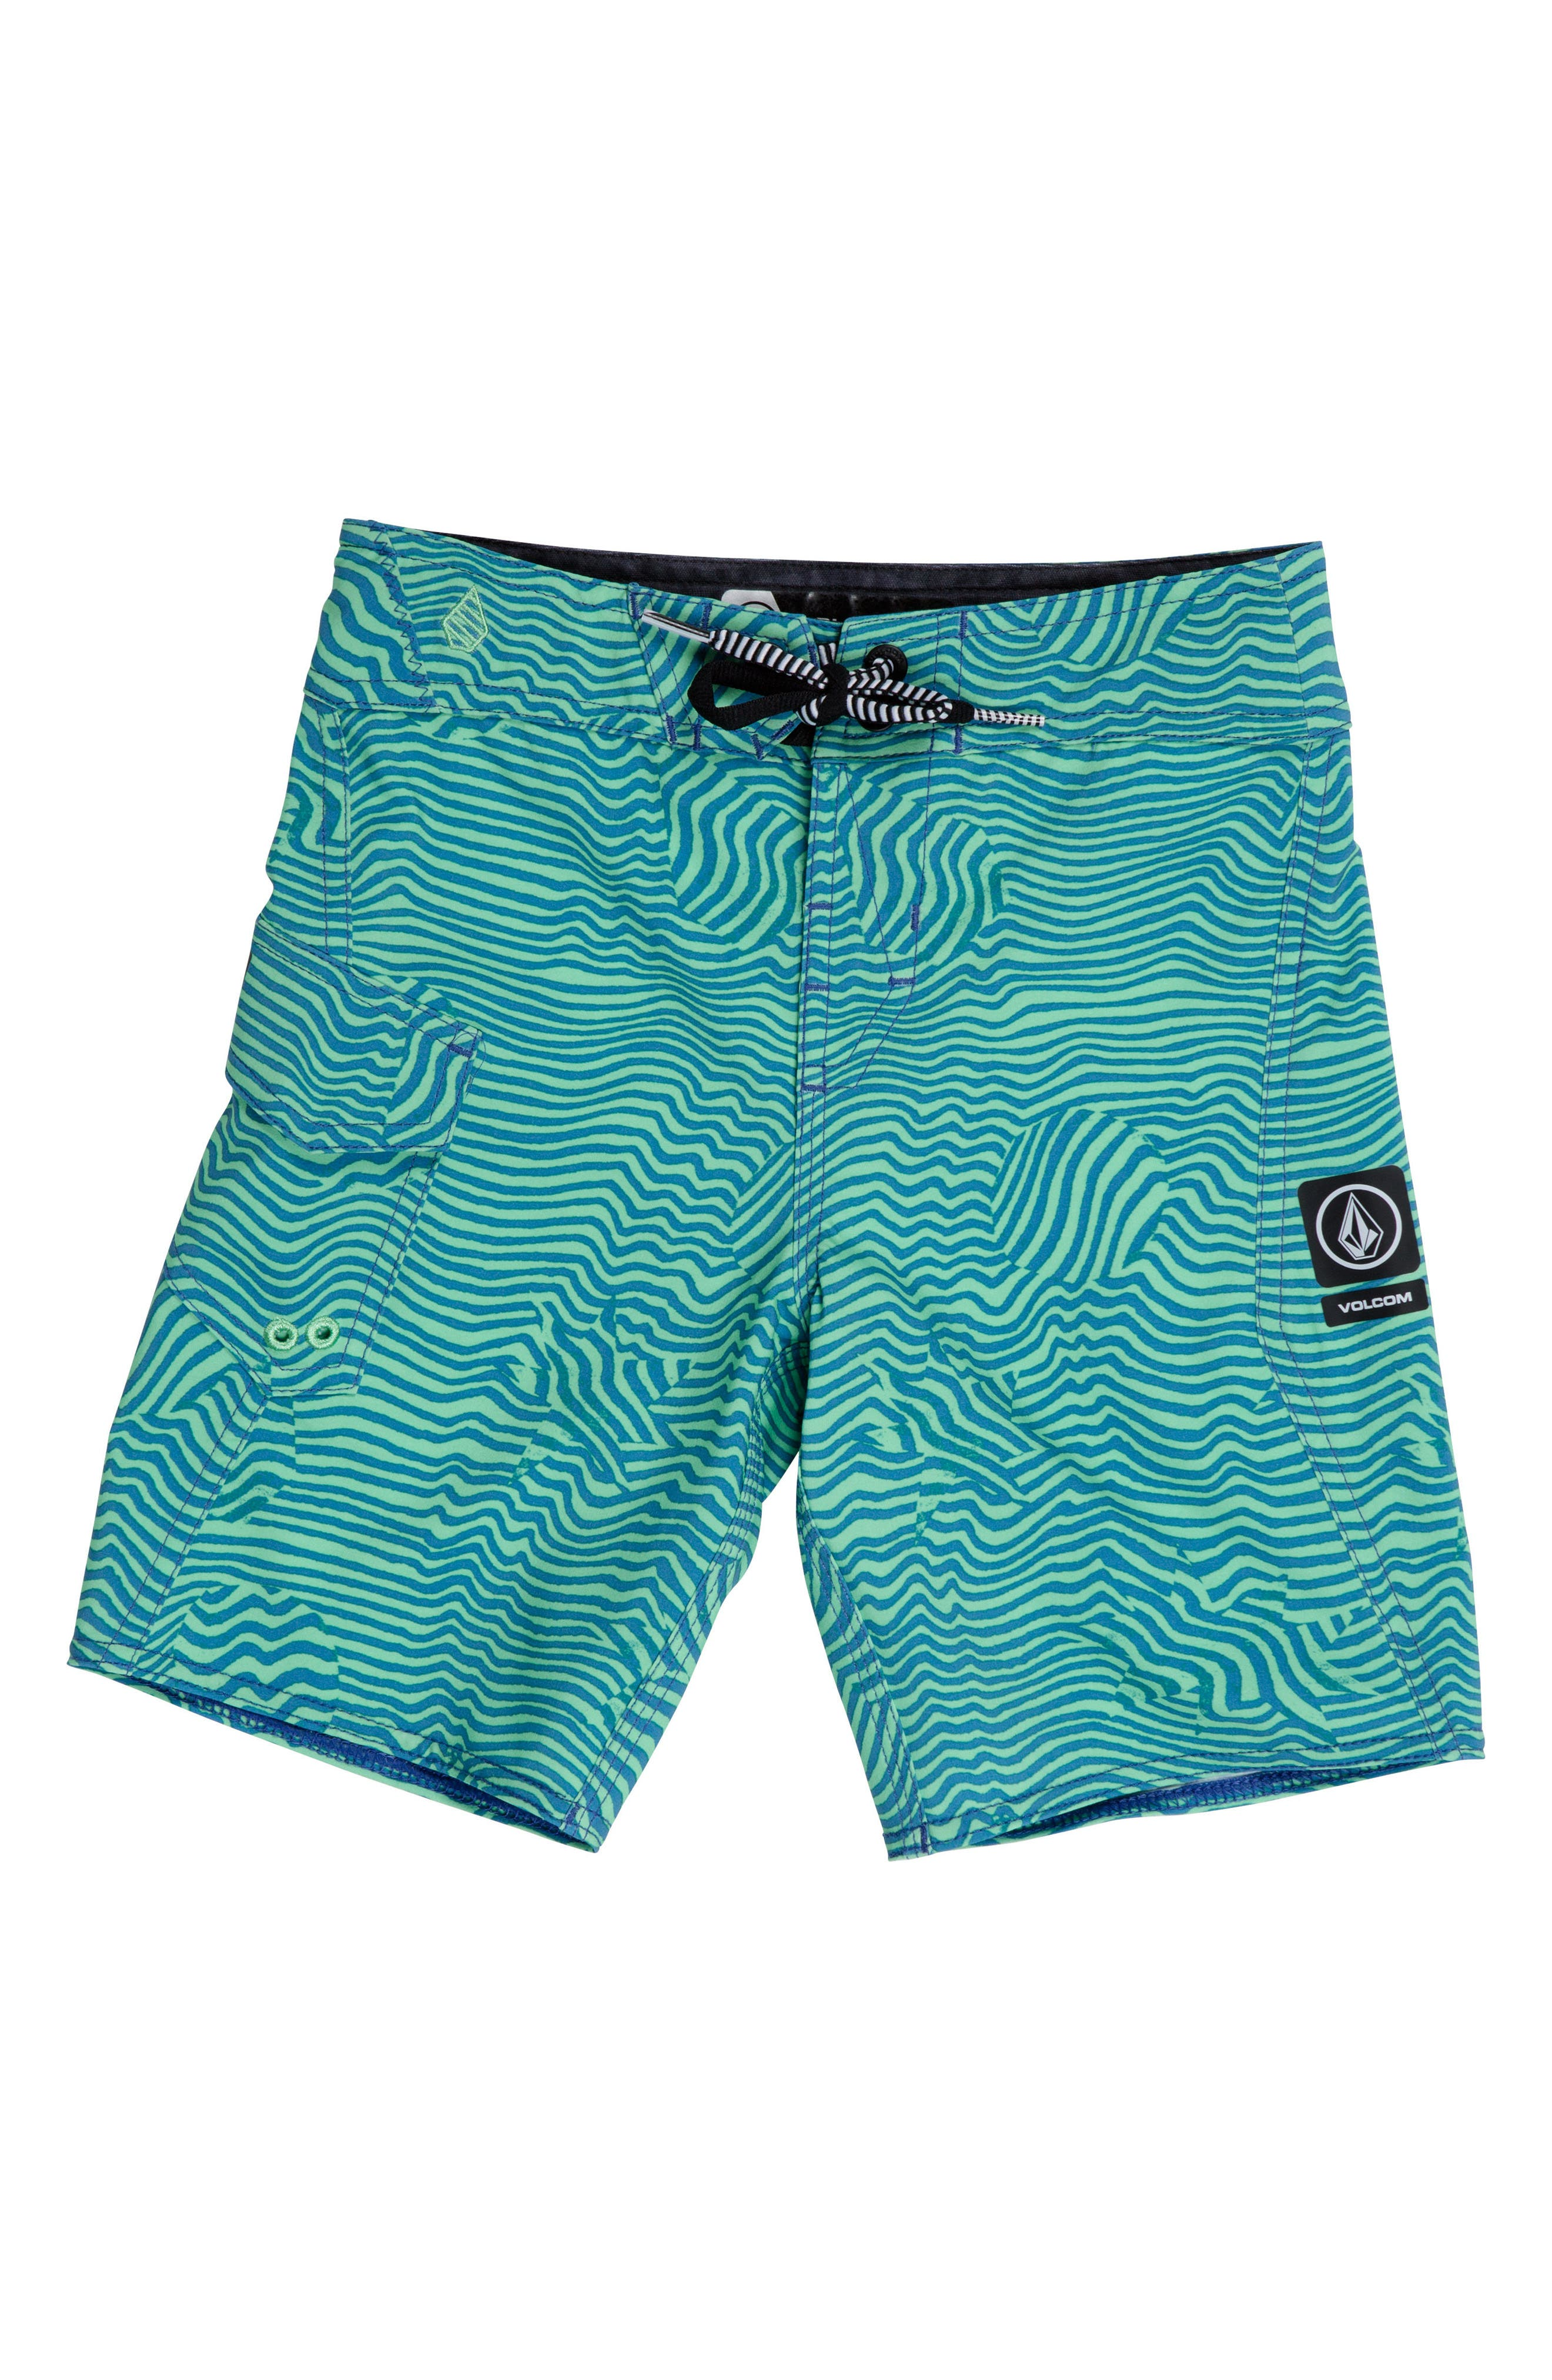 Magnetic Stone Board Shorts,                             Main thumbnail 1, color,                             Poison Green